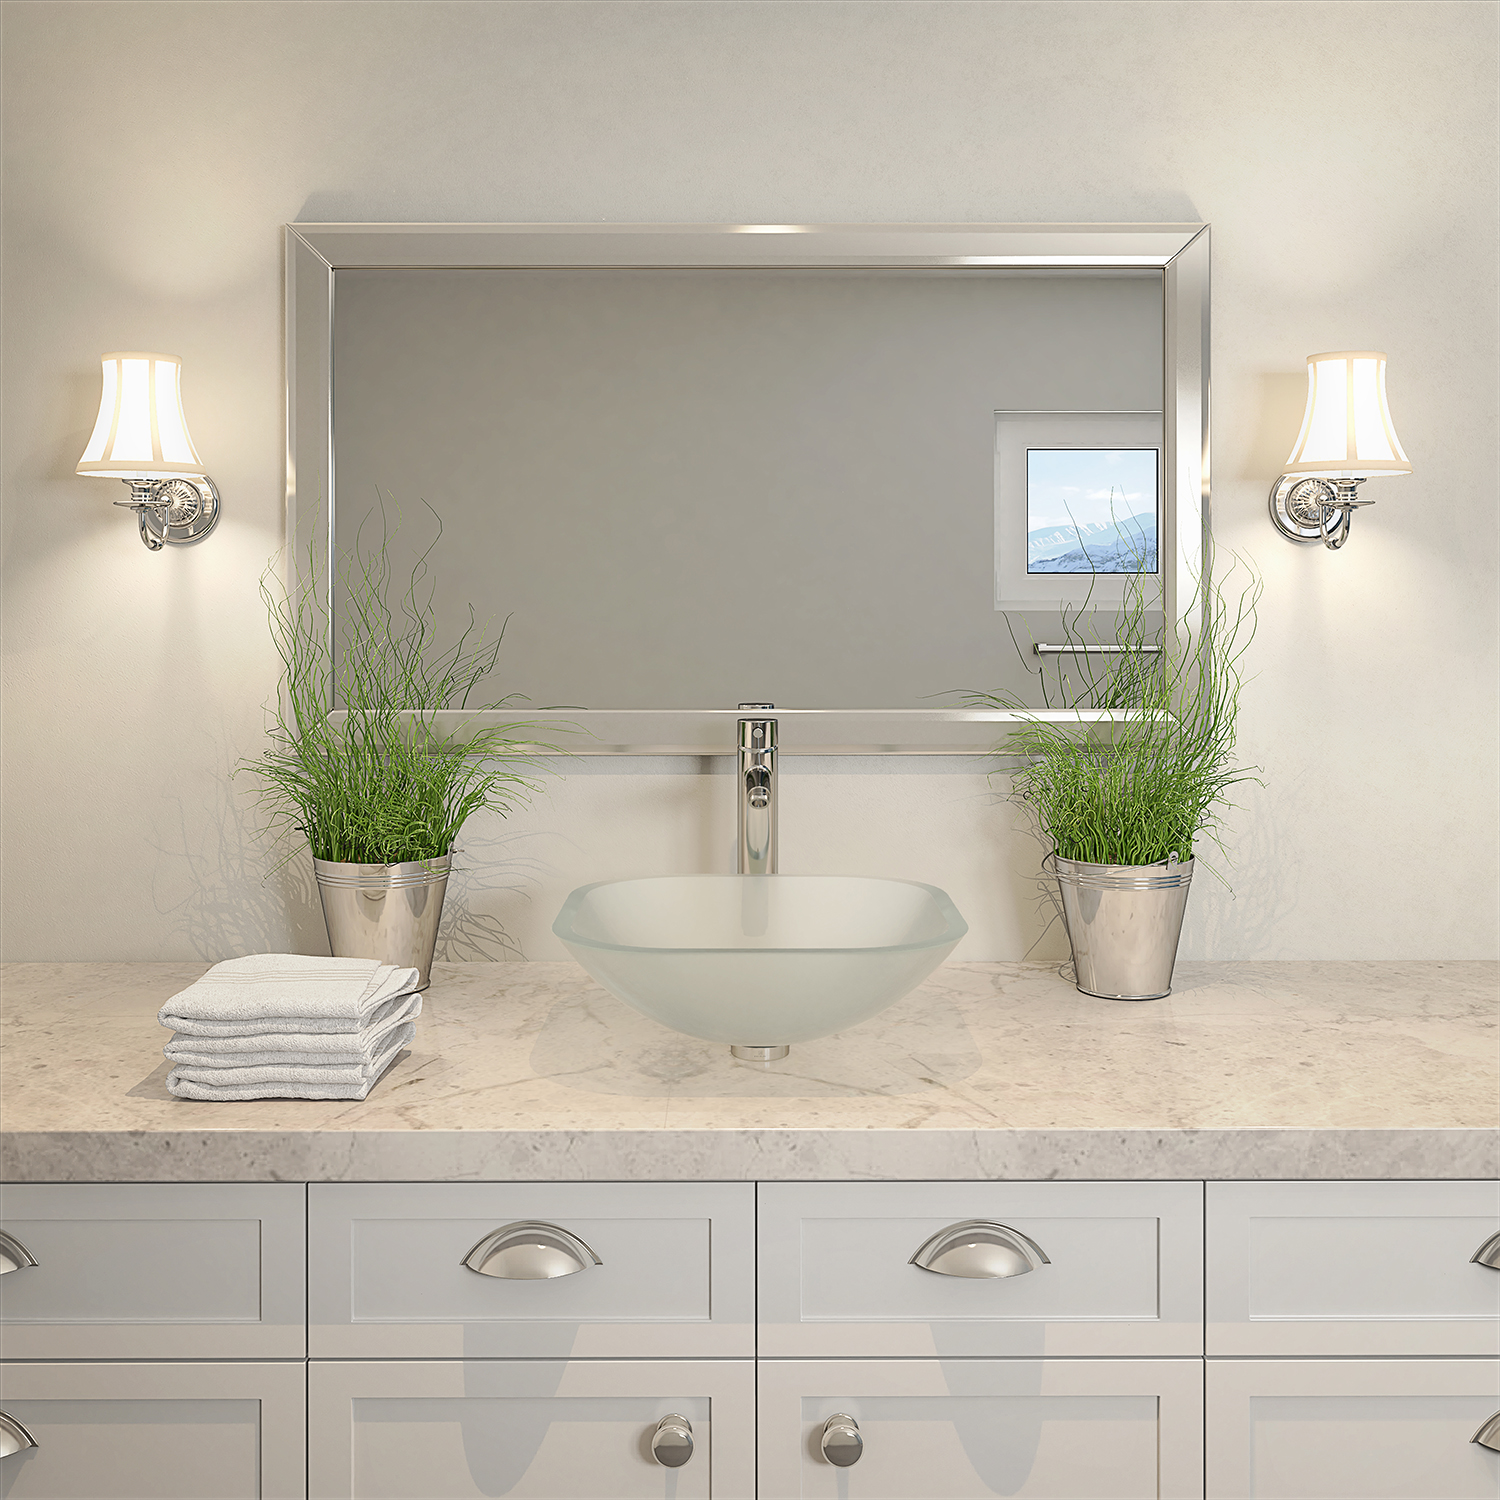 Small Bathroom Tips: Creating a Light and Bright Feeling